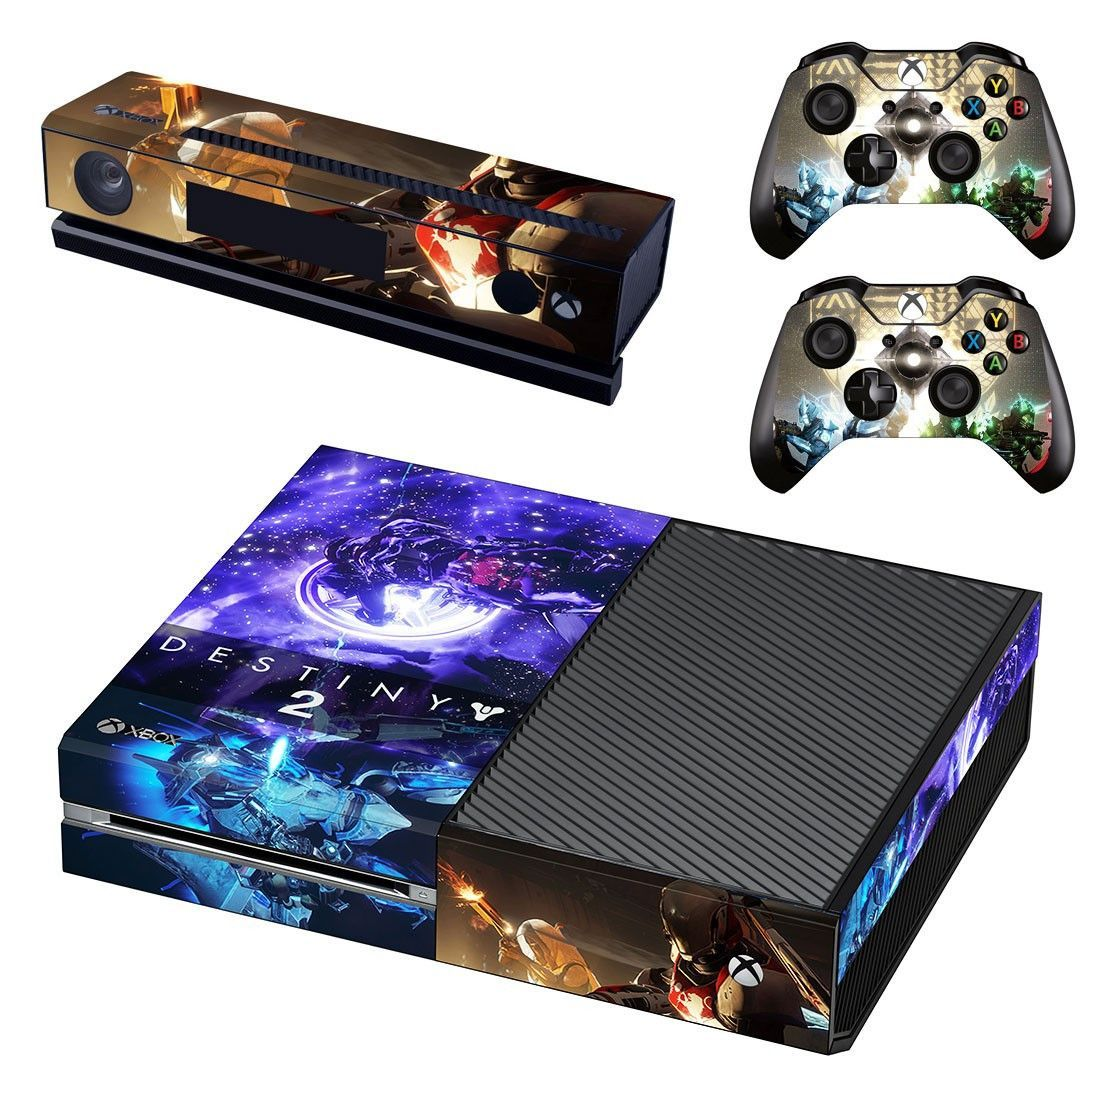 Destiny 2 xbox one skin decal for console and 2